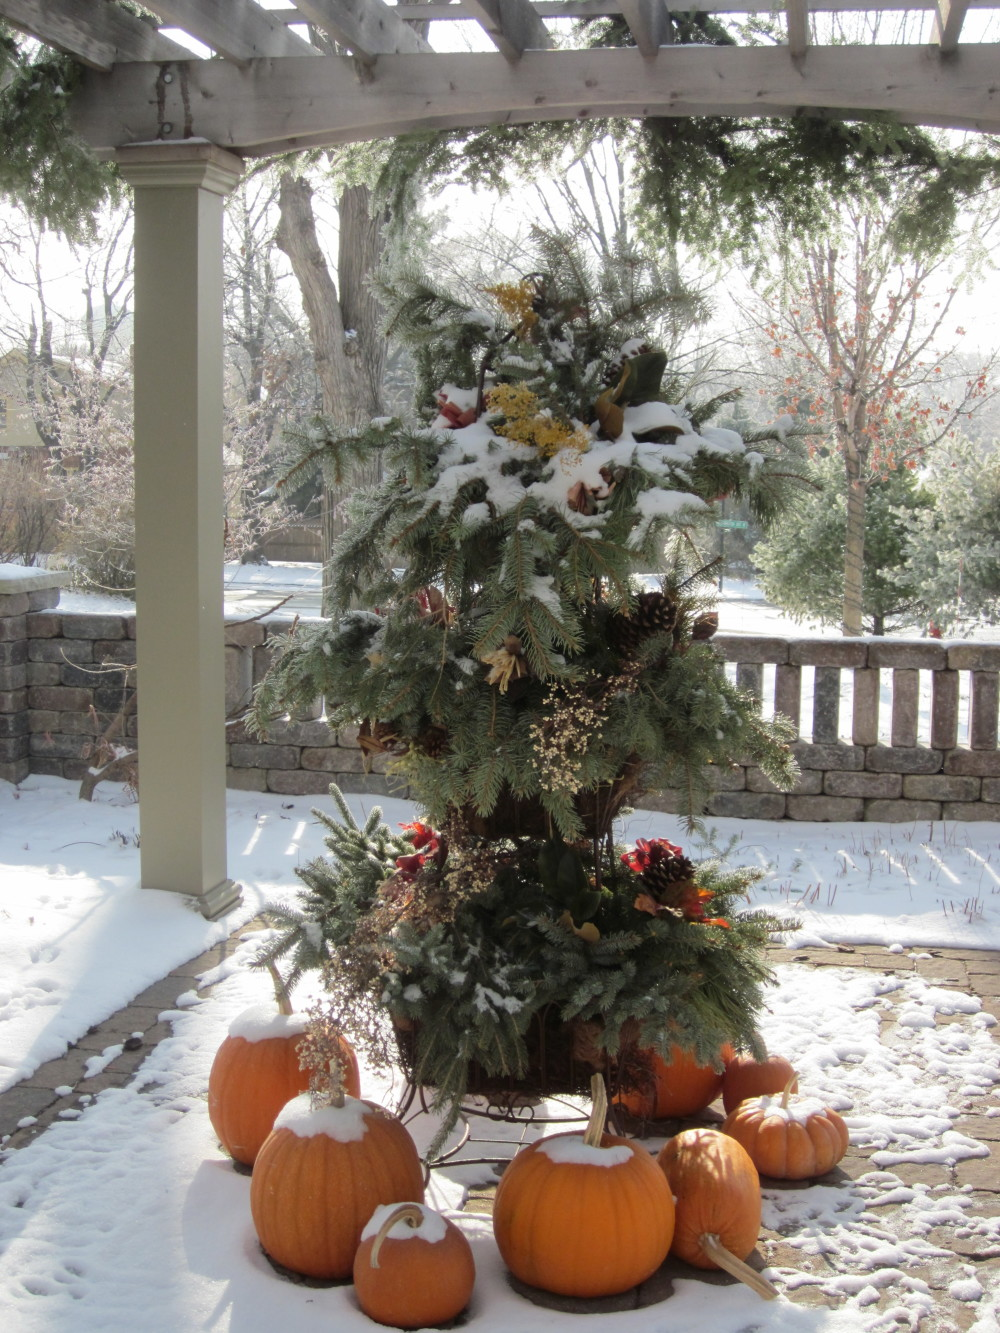 Decorating for the holidays... with the first dusting of snow.